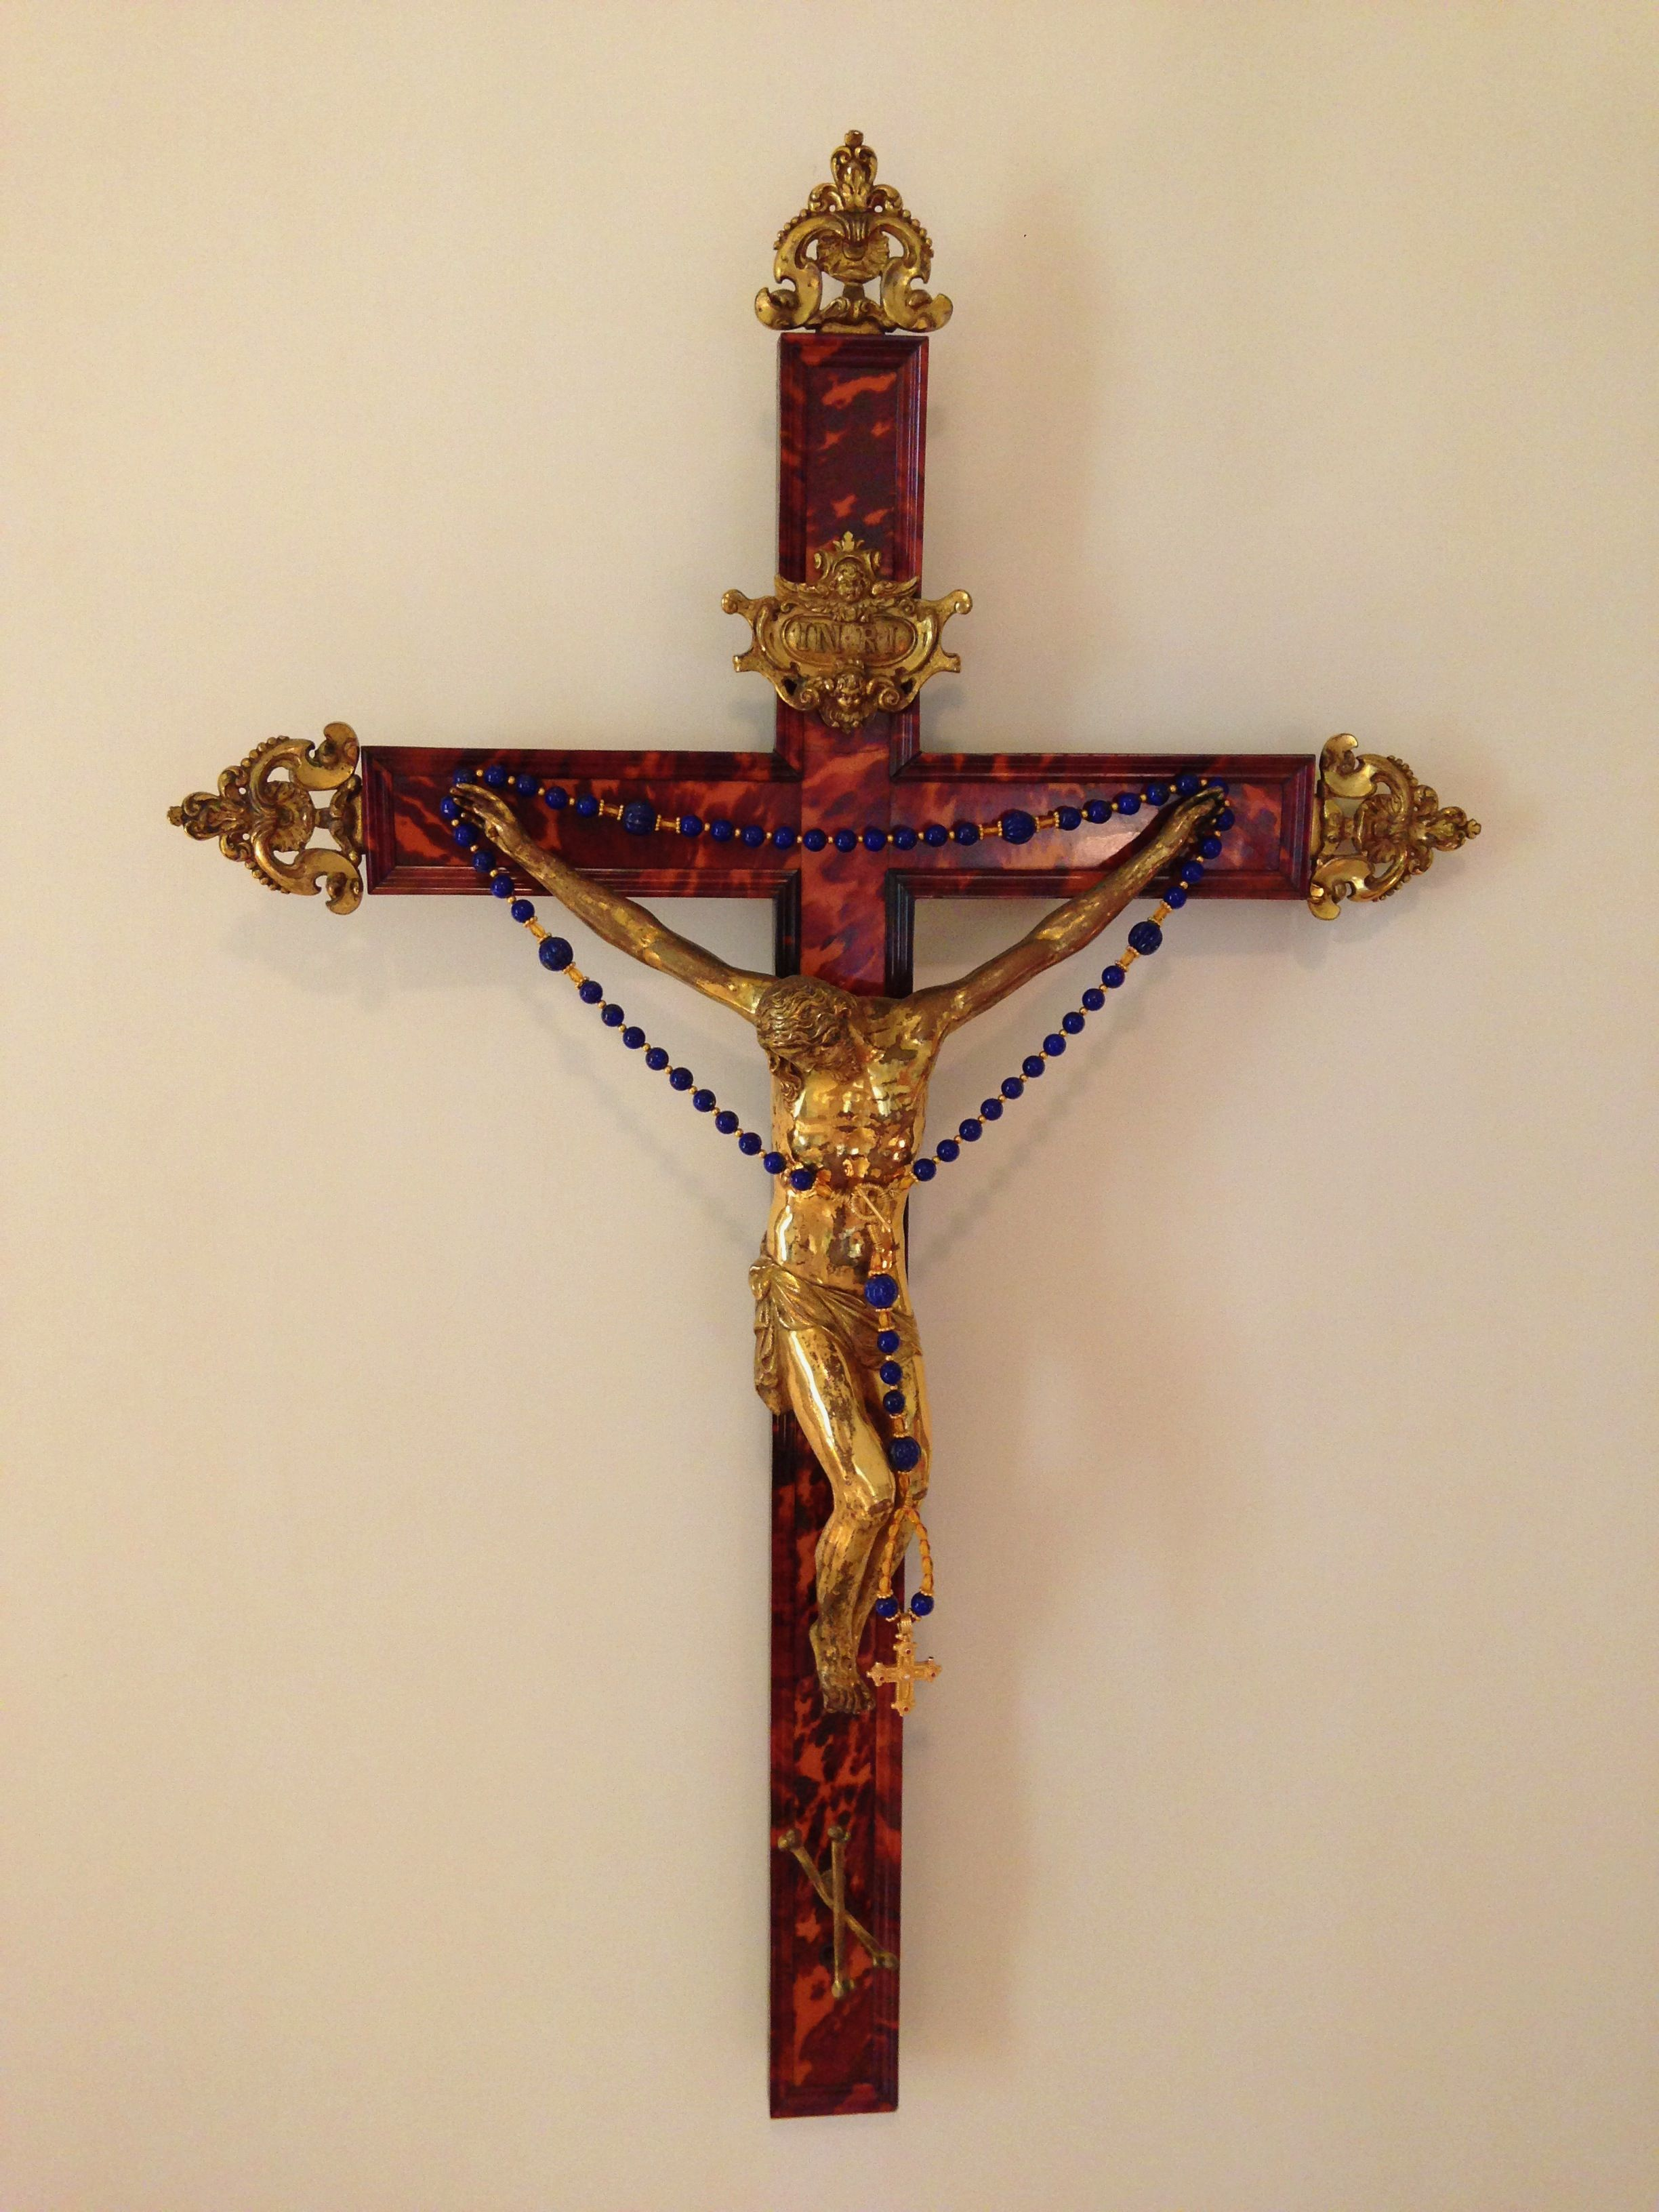 The Tortoiseshell Crucifix Over My Bed With A Rosary I Made Of Lapis